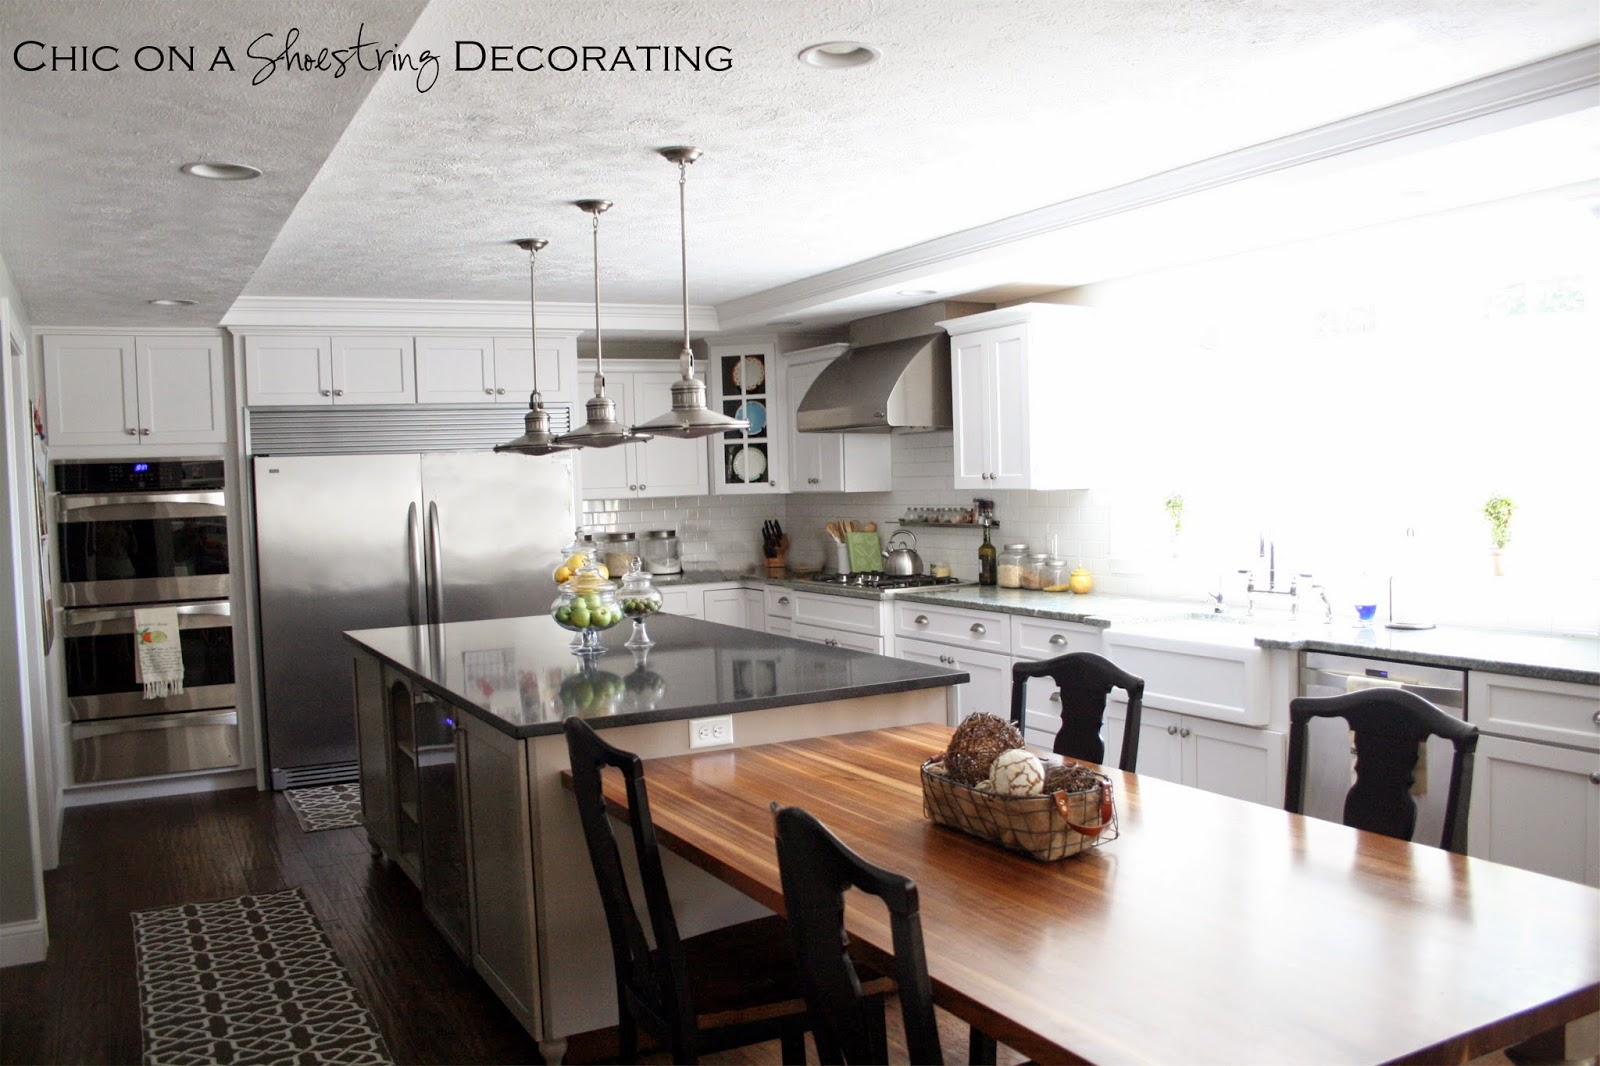 Chic on a shoestring decorating client kitchen remodel reveal - Islands dining room ...